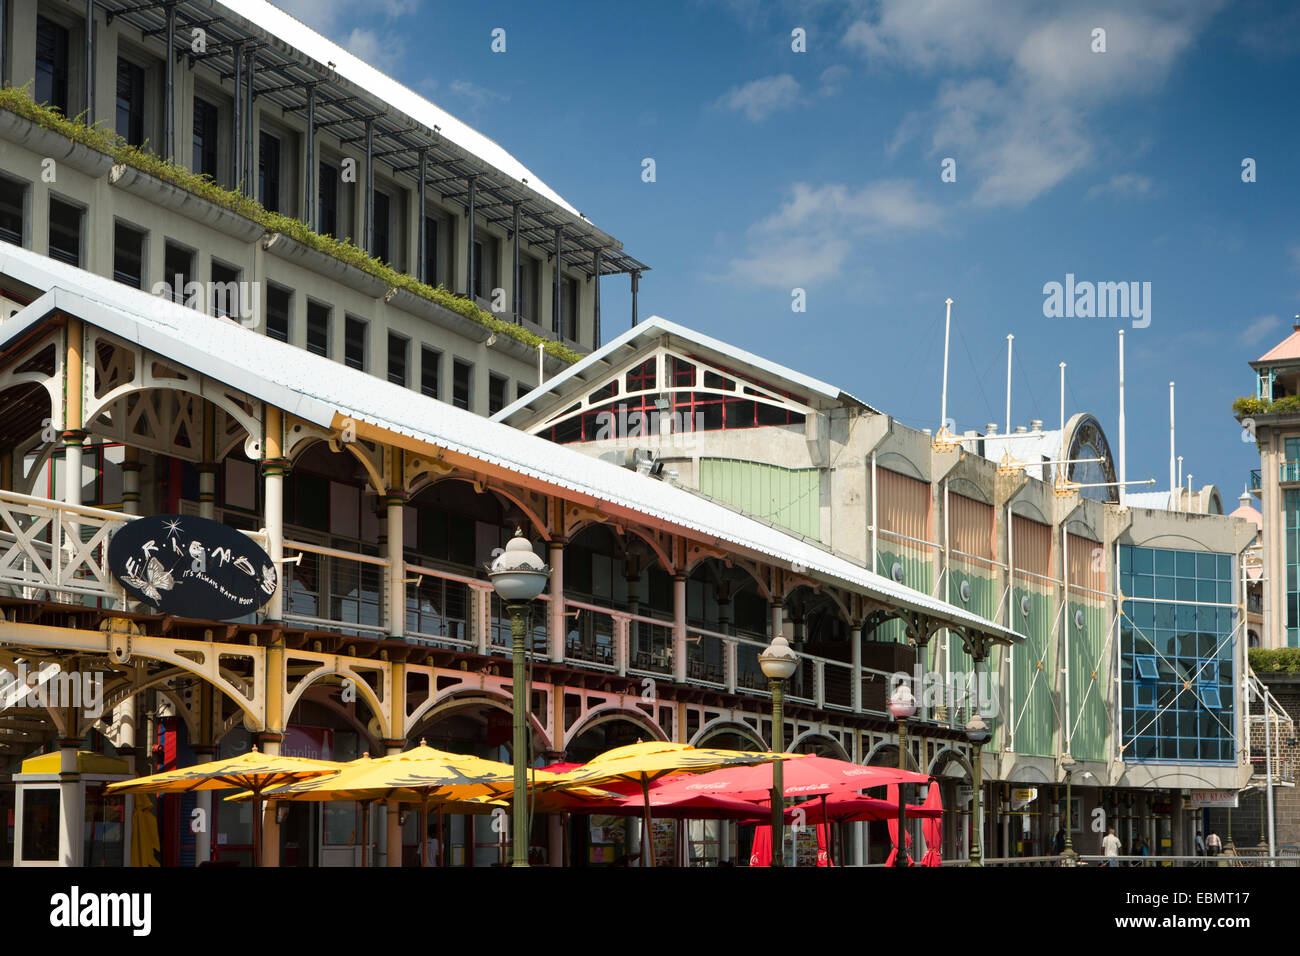 Mauritius port louis caudon waterfront seafront bars and stock photo royalty free image - Restaurants in port louis mauritius ...